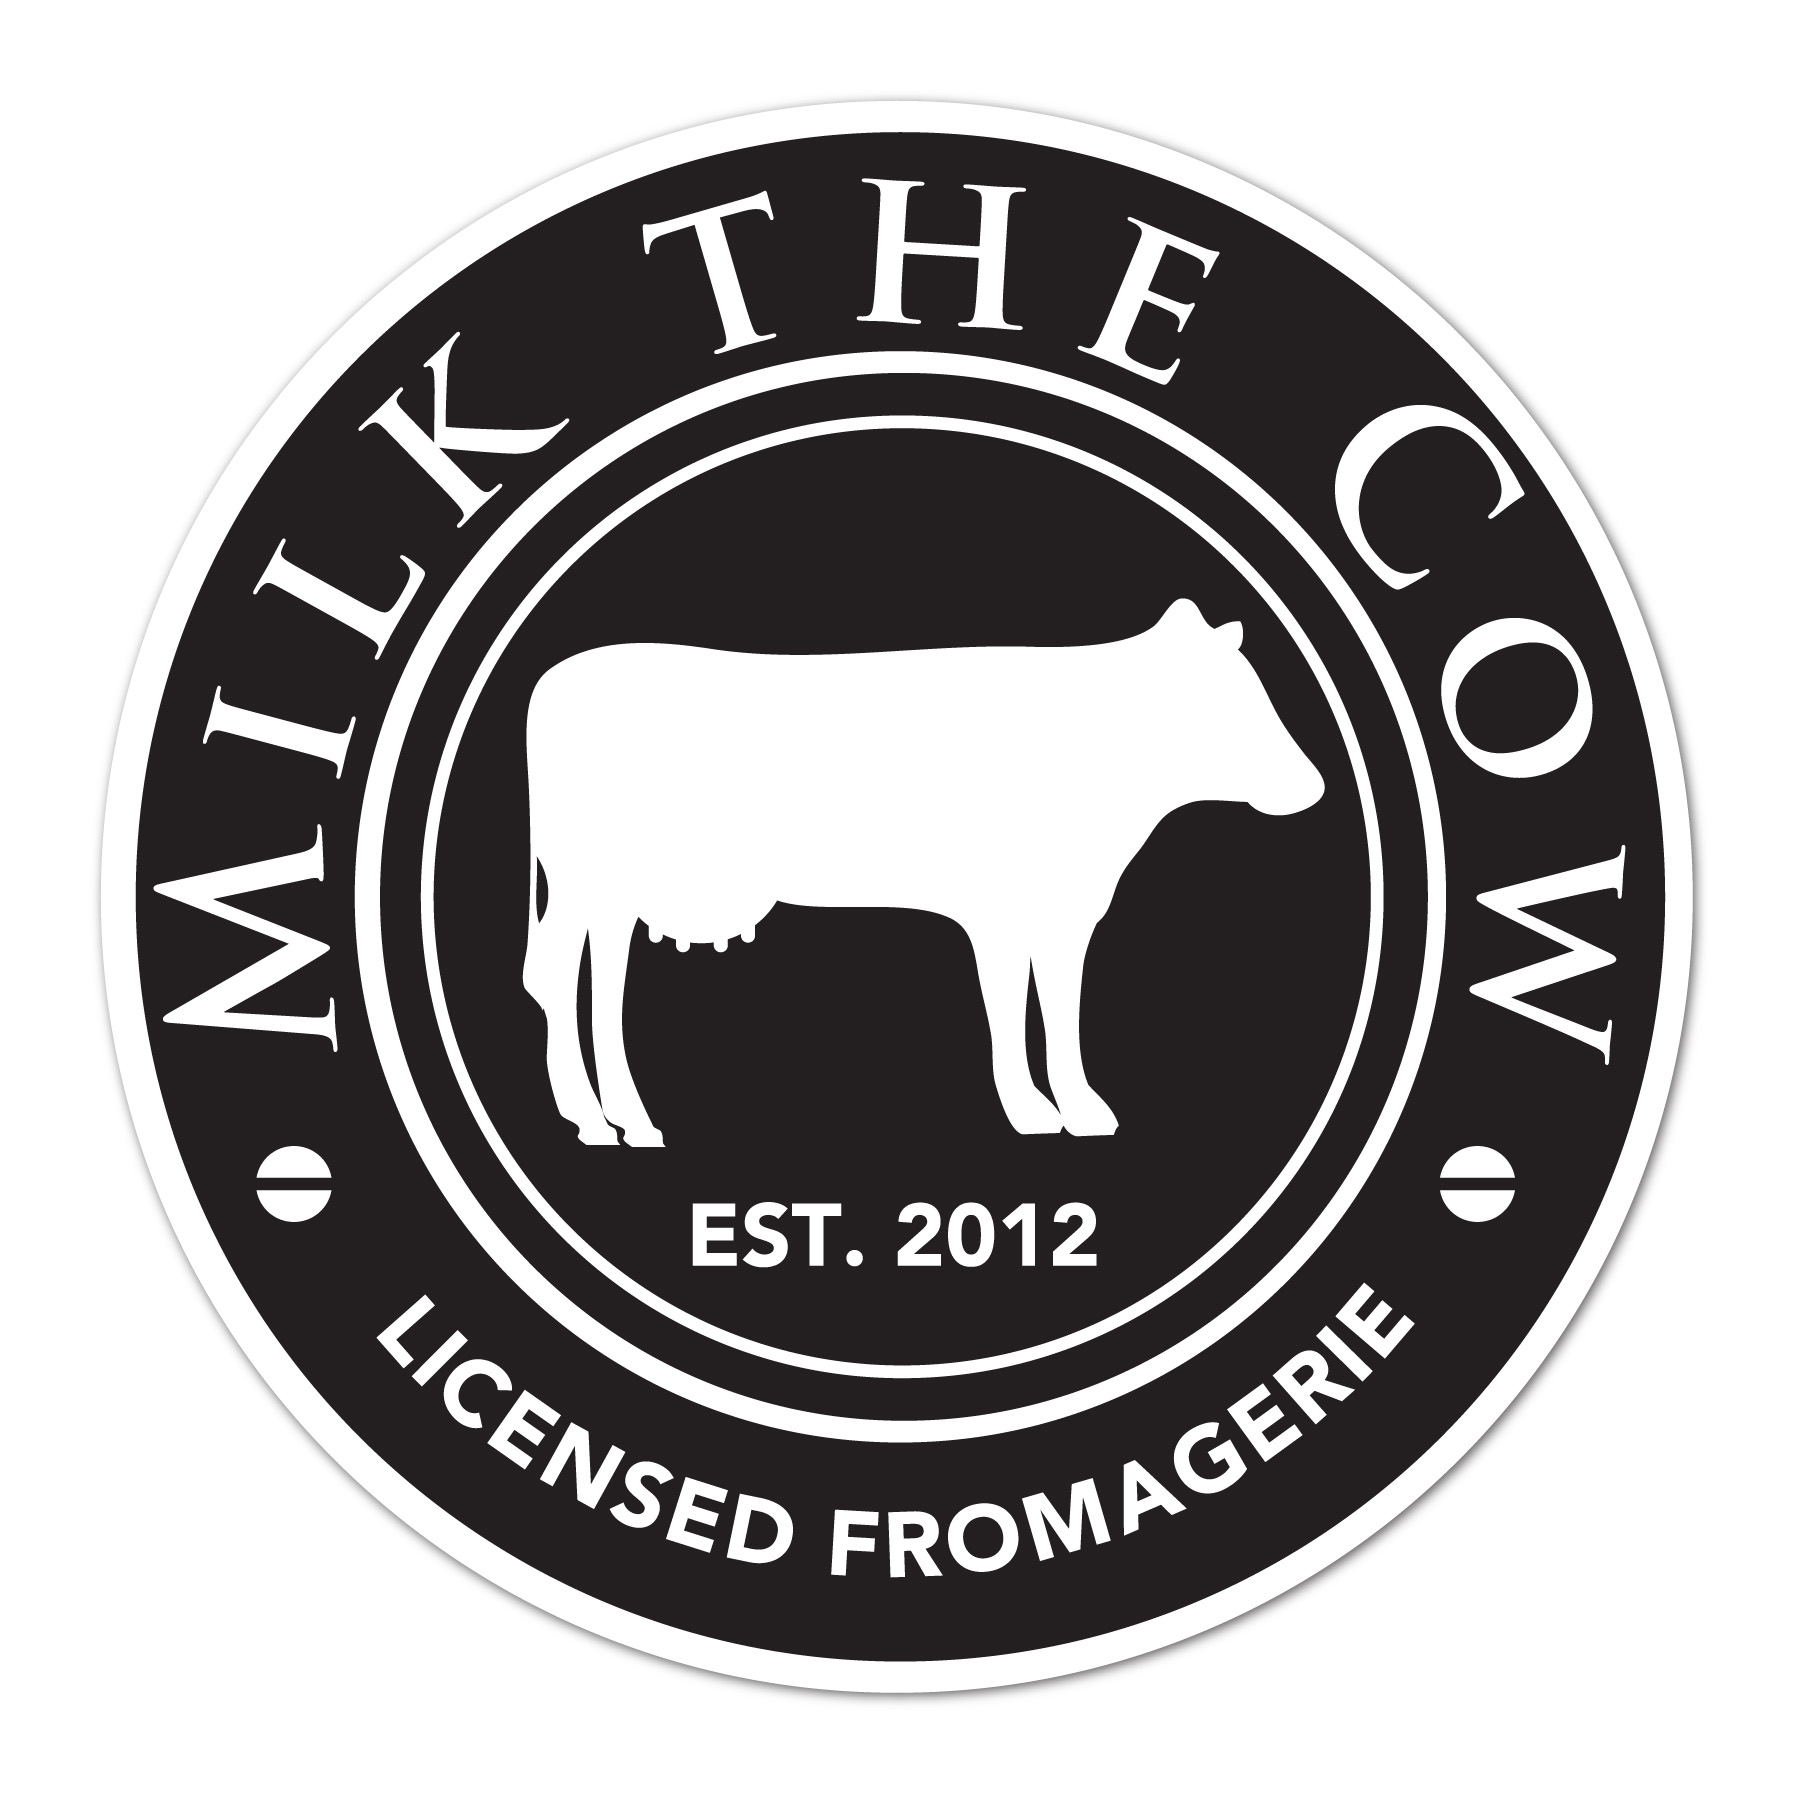 Milk the Cow Licensed Fromagerie